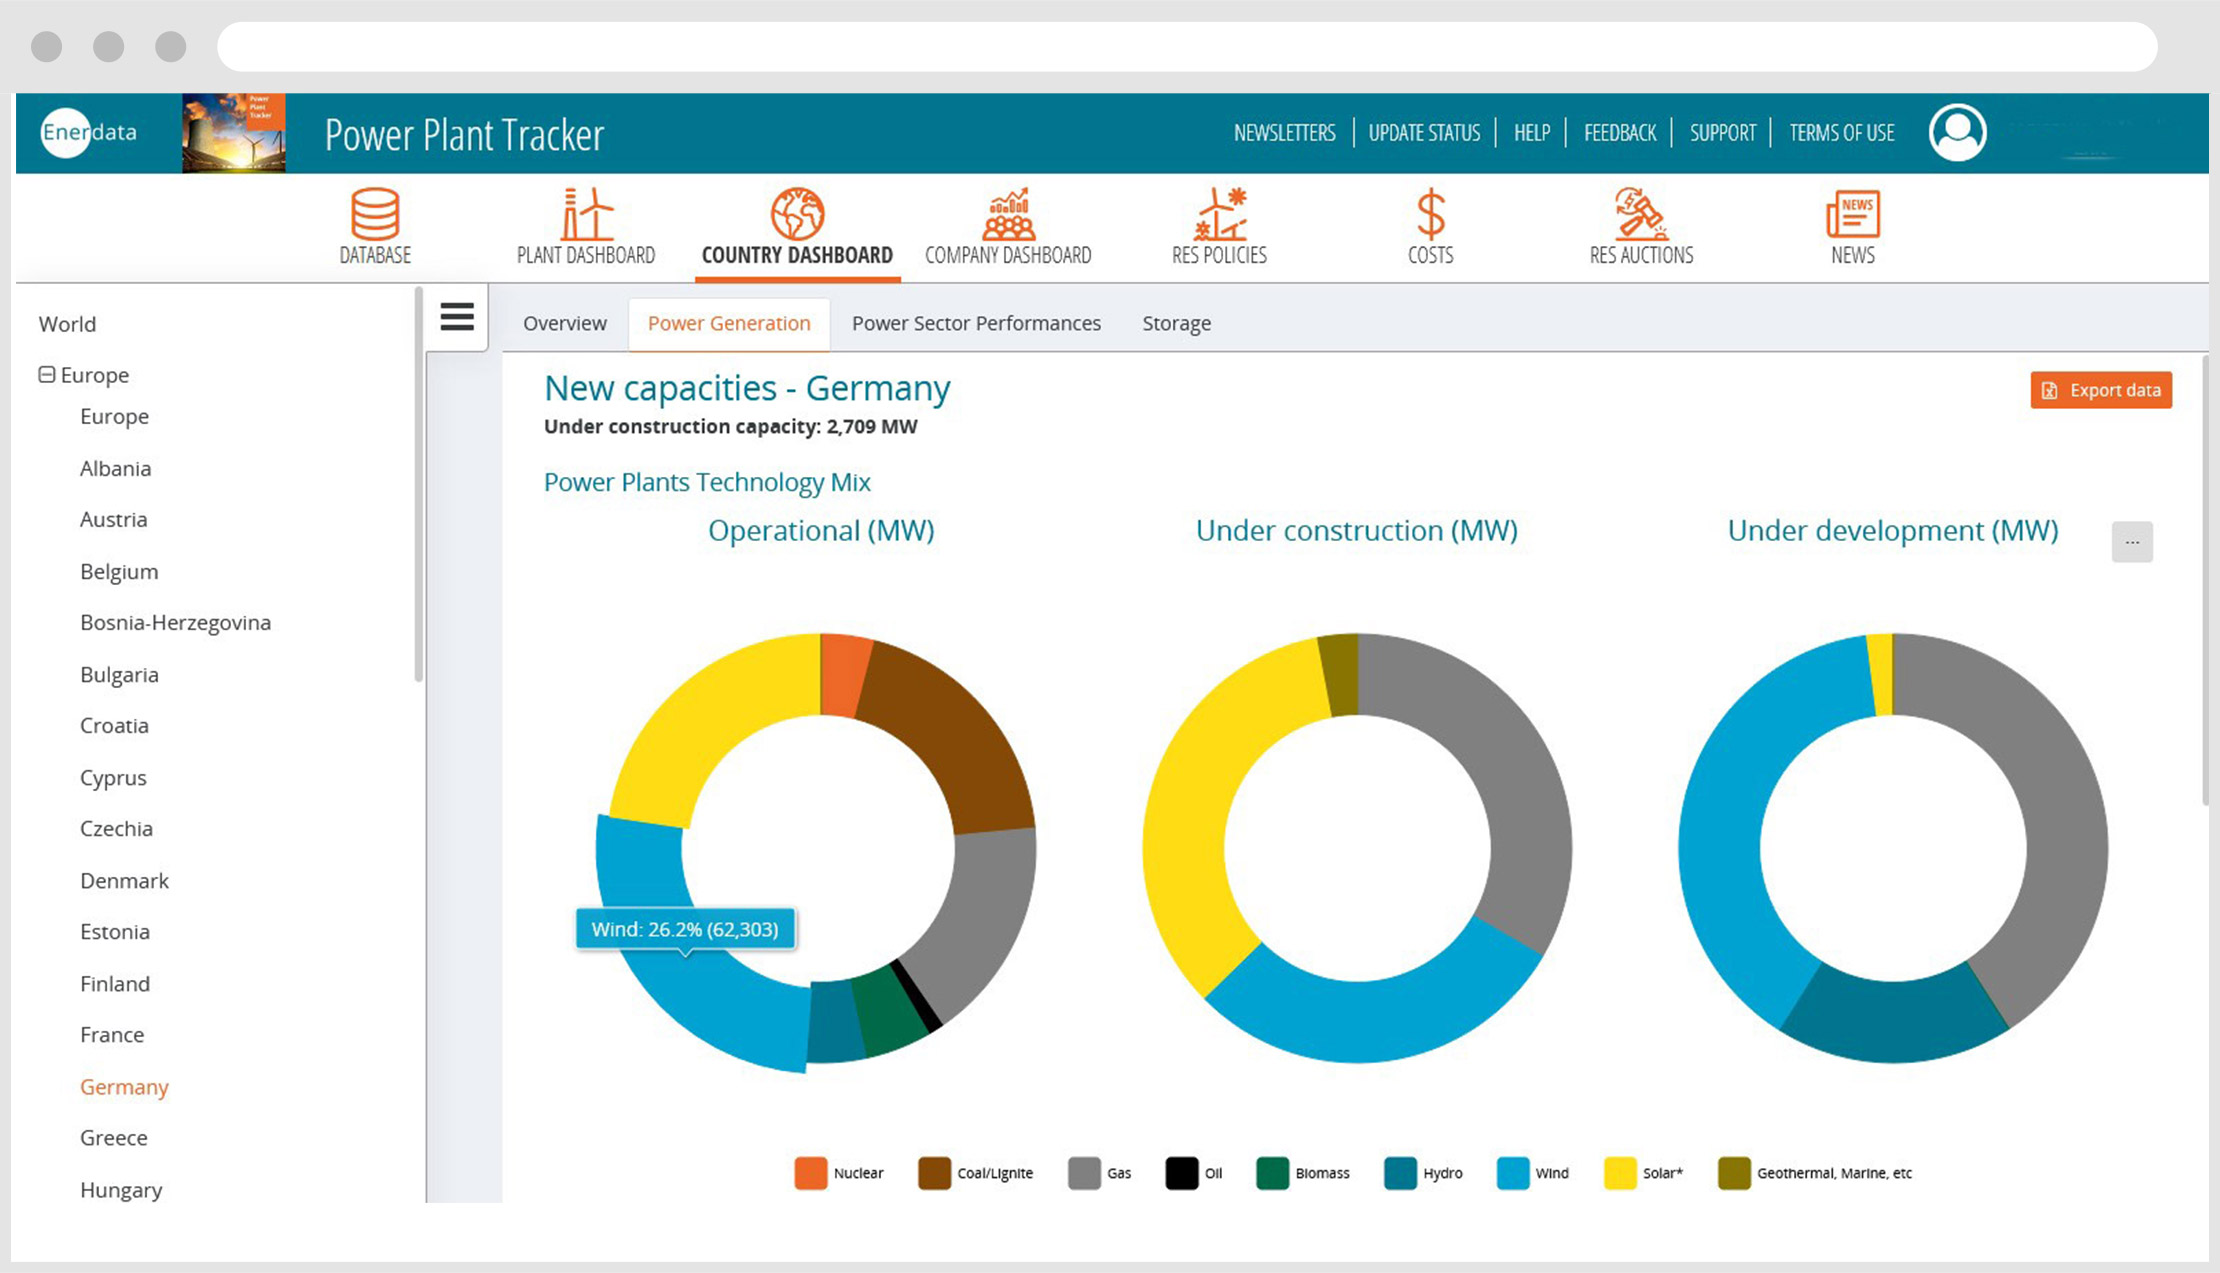 Country dashboard new capacities Germany